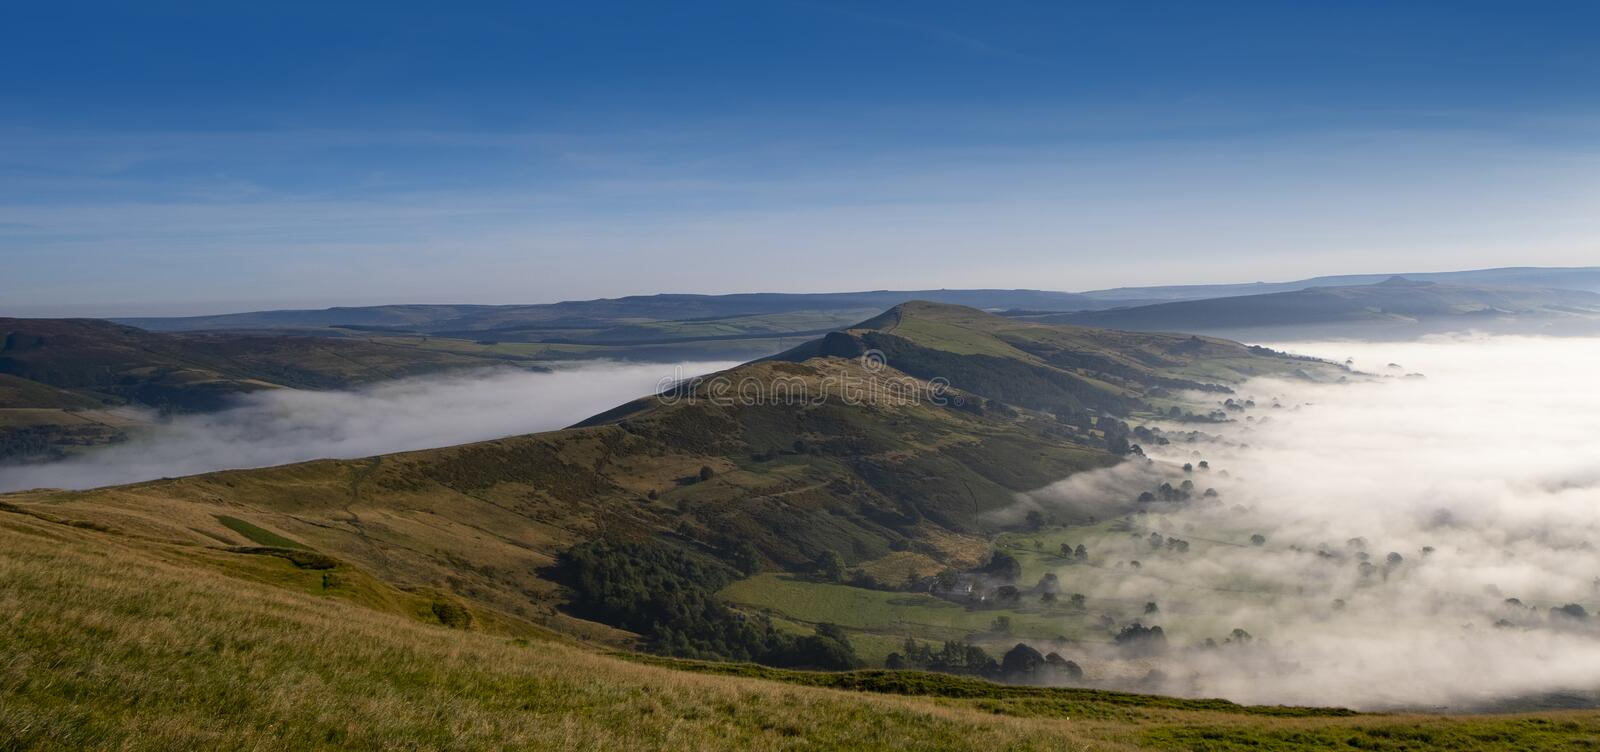 Peak District, Derbyshire, morning mist in Hope valley and Edale, seen from Mam Tor. Early morning mist settling in the valleys of the Peak District, Derbyshire stock photography